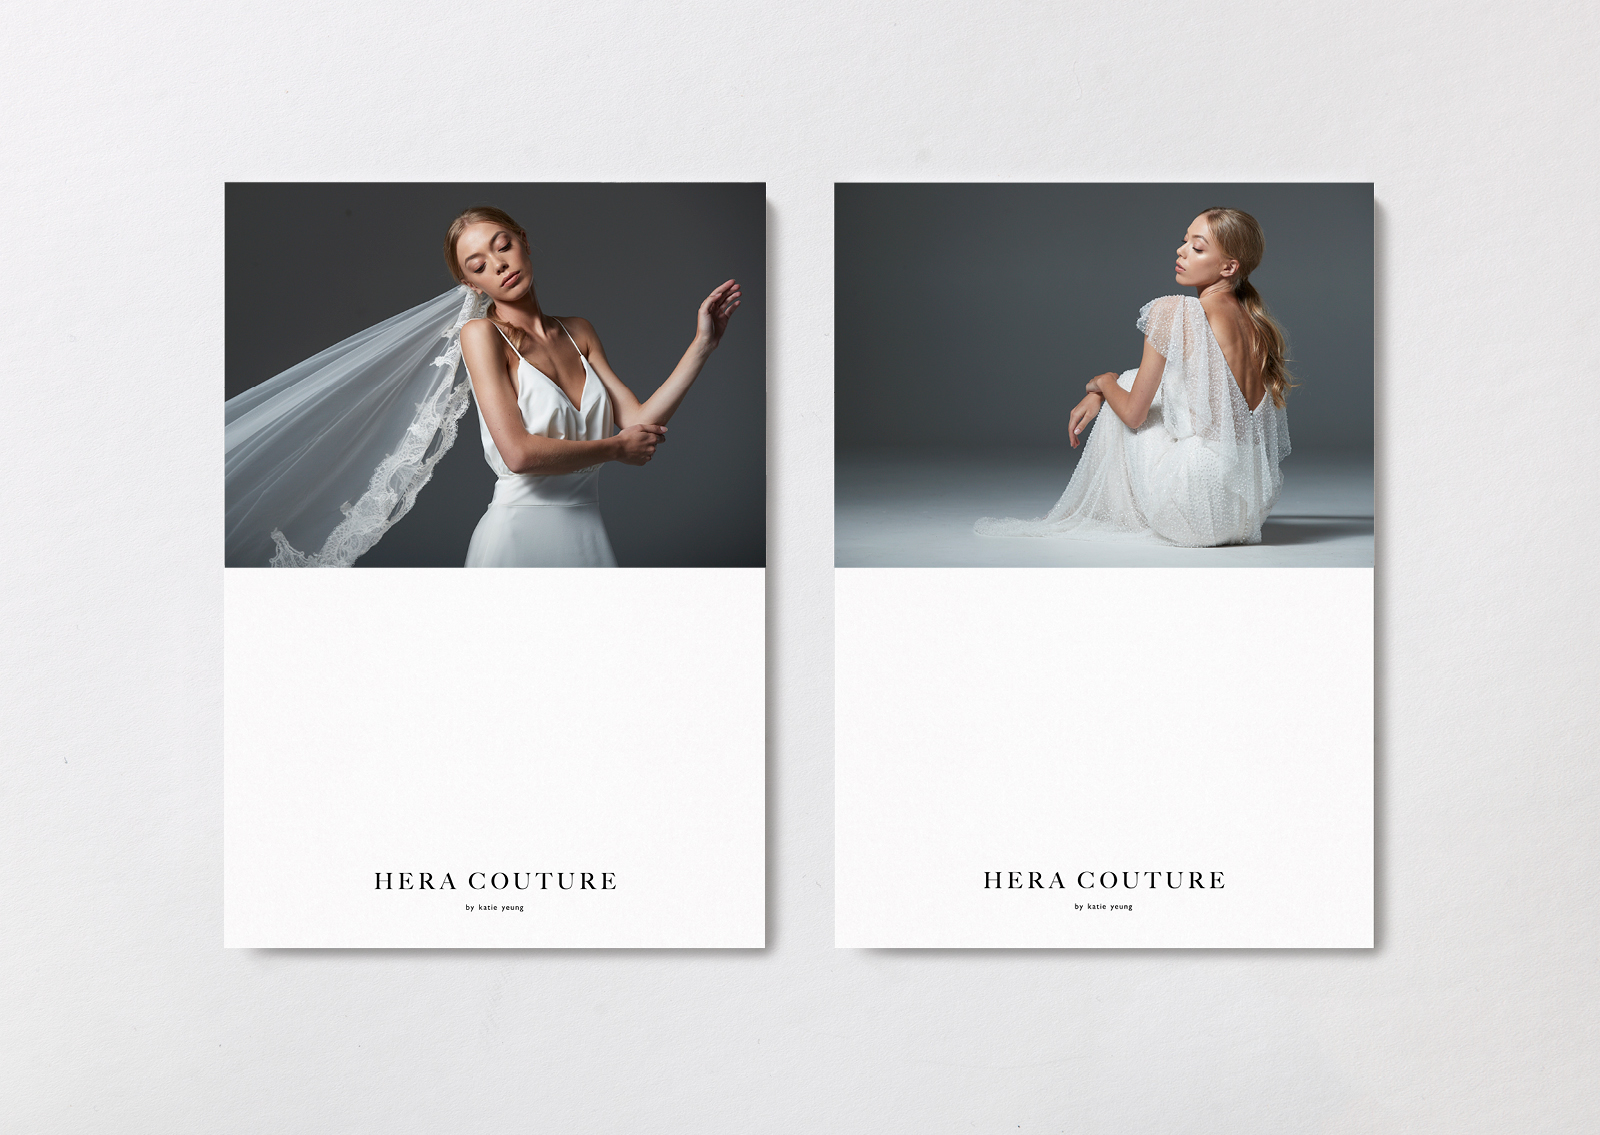 Hera Couture brand postcards – feature flowing lace veil and elegant gowns